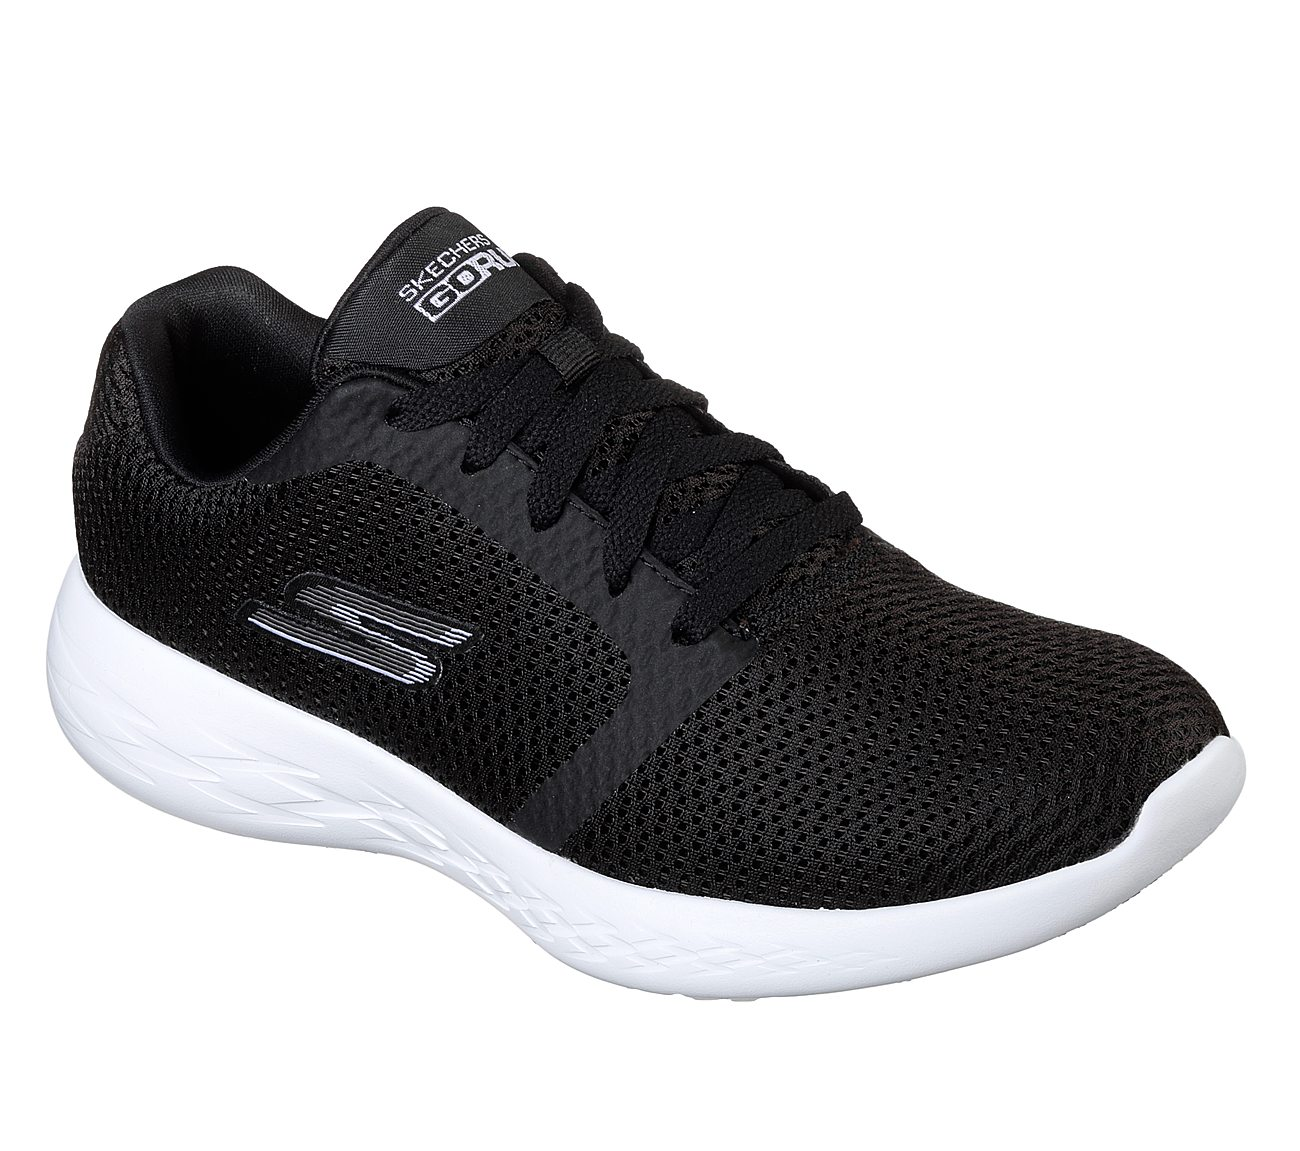 princesa Superioridad Portero  Buy SKECHERS Skechers GOrun 600 Skechers Performance Shoes